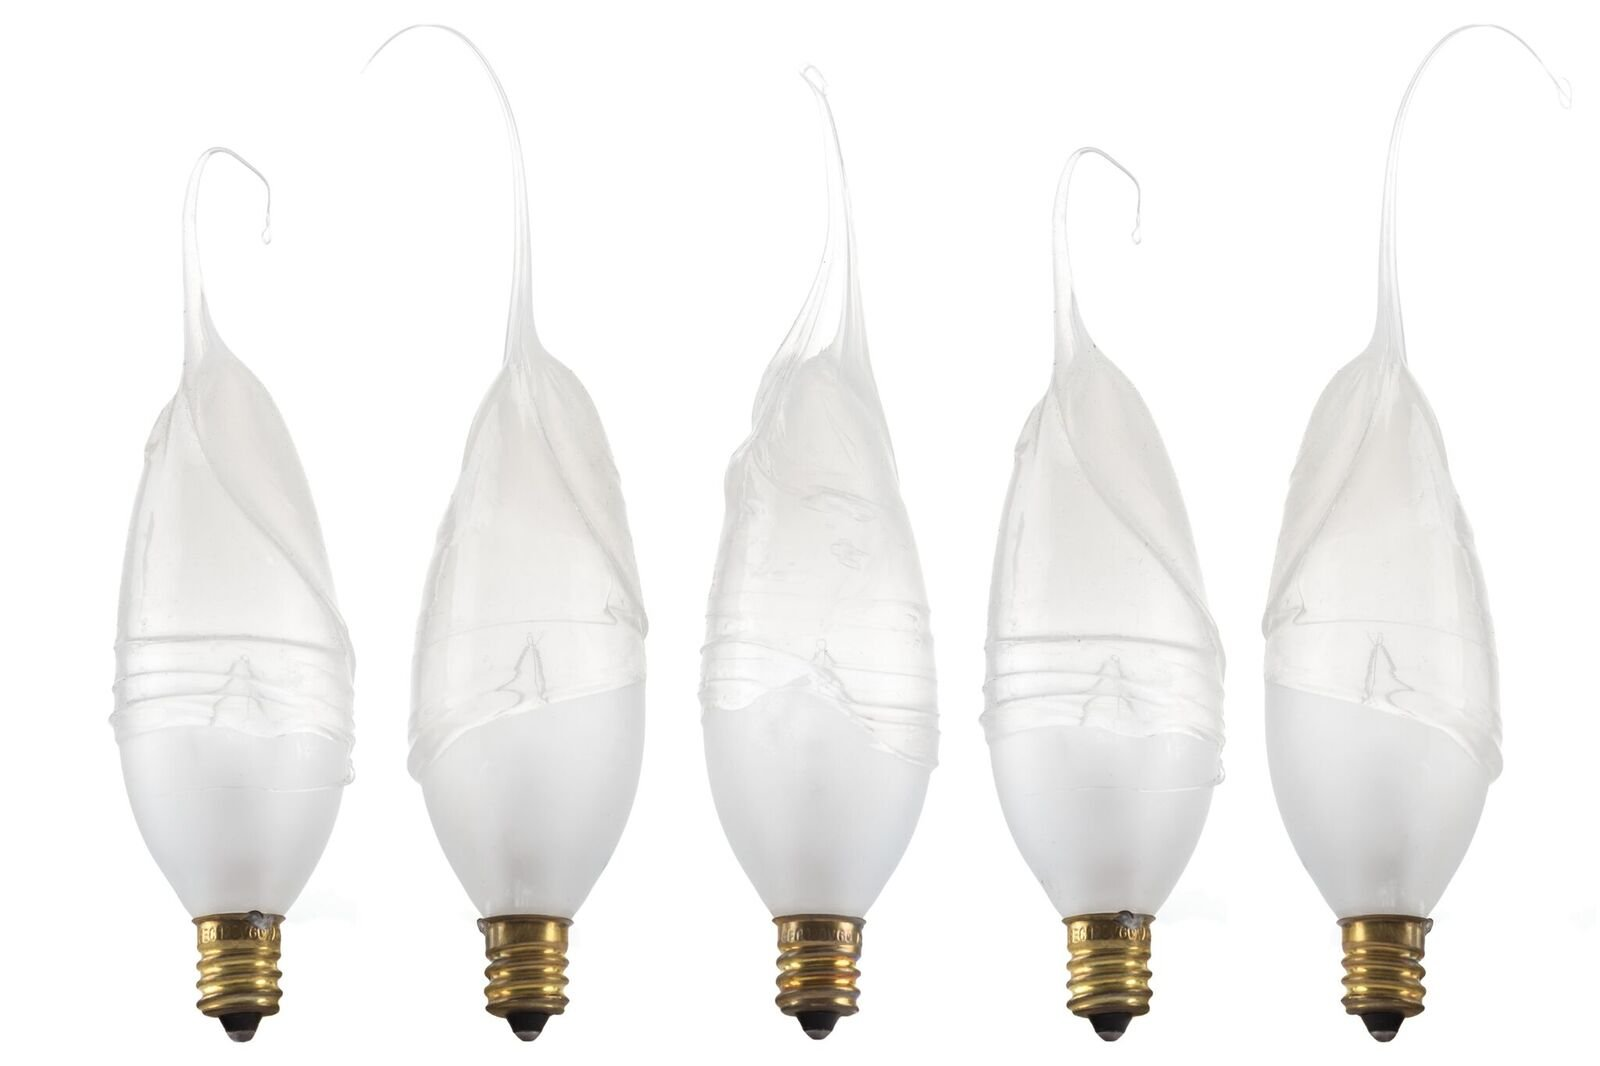 Wish Designs USA Silicone Dipped Hand Dipped Light Bulb, Frosted, 60 watt, 30 bulb quantity, #60w30pk by Wish Designs USA